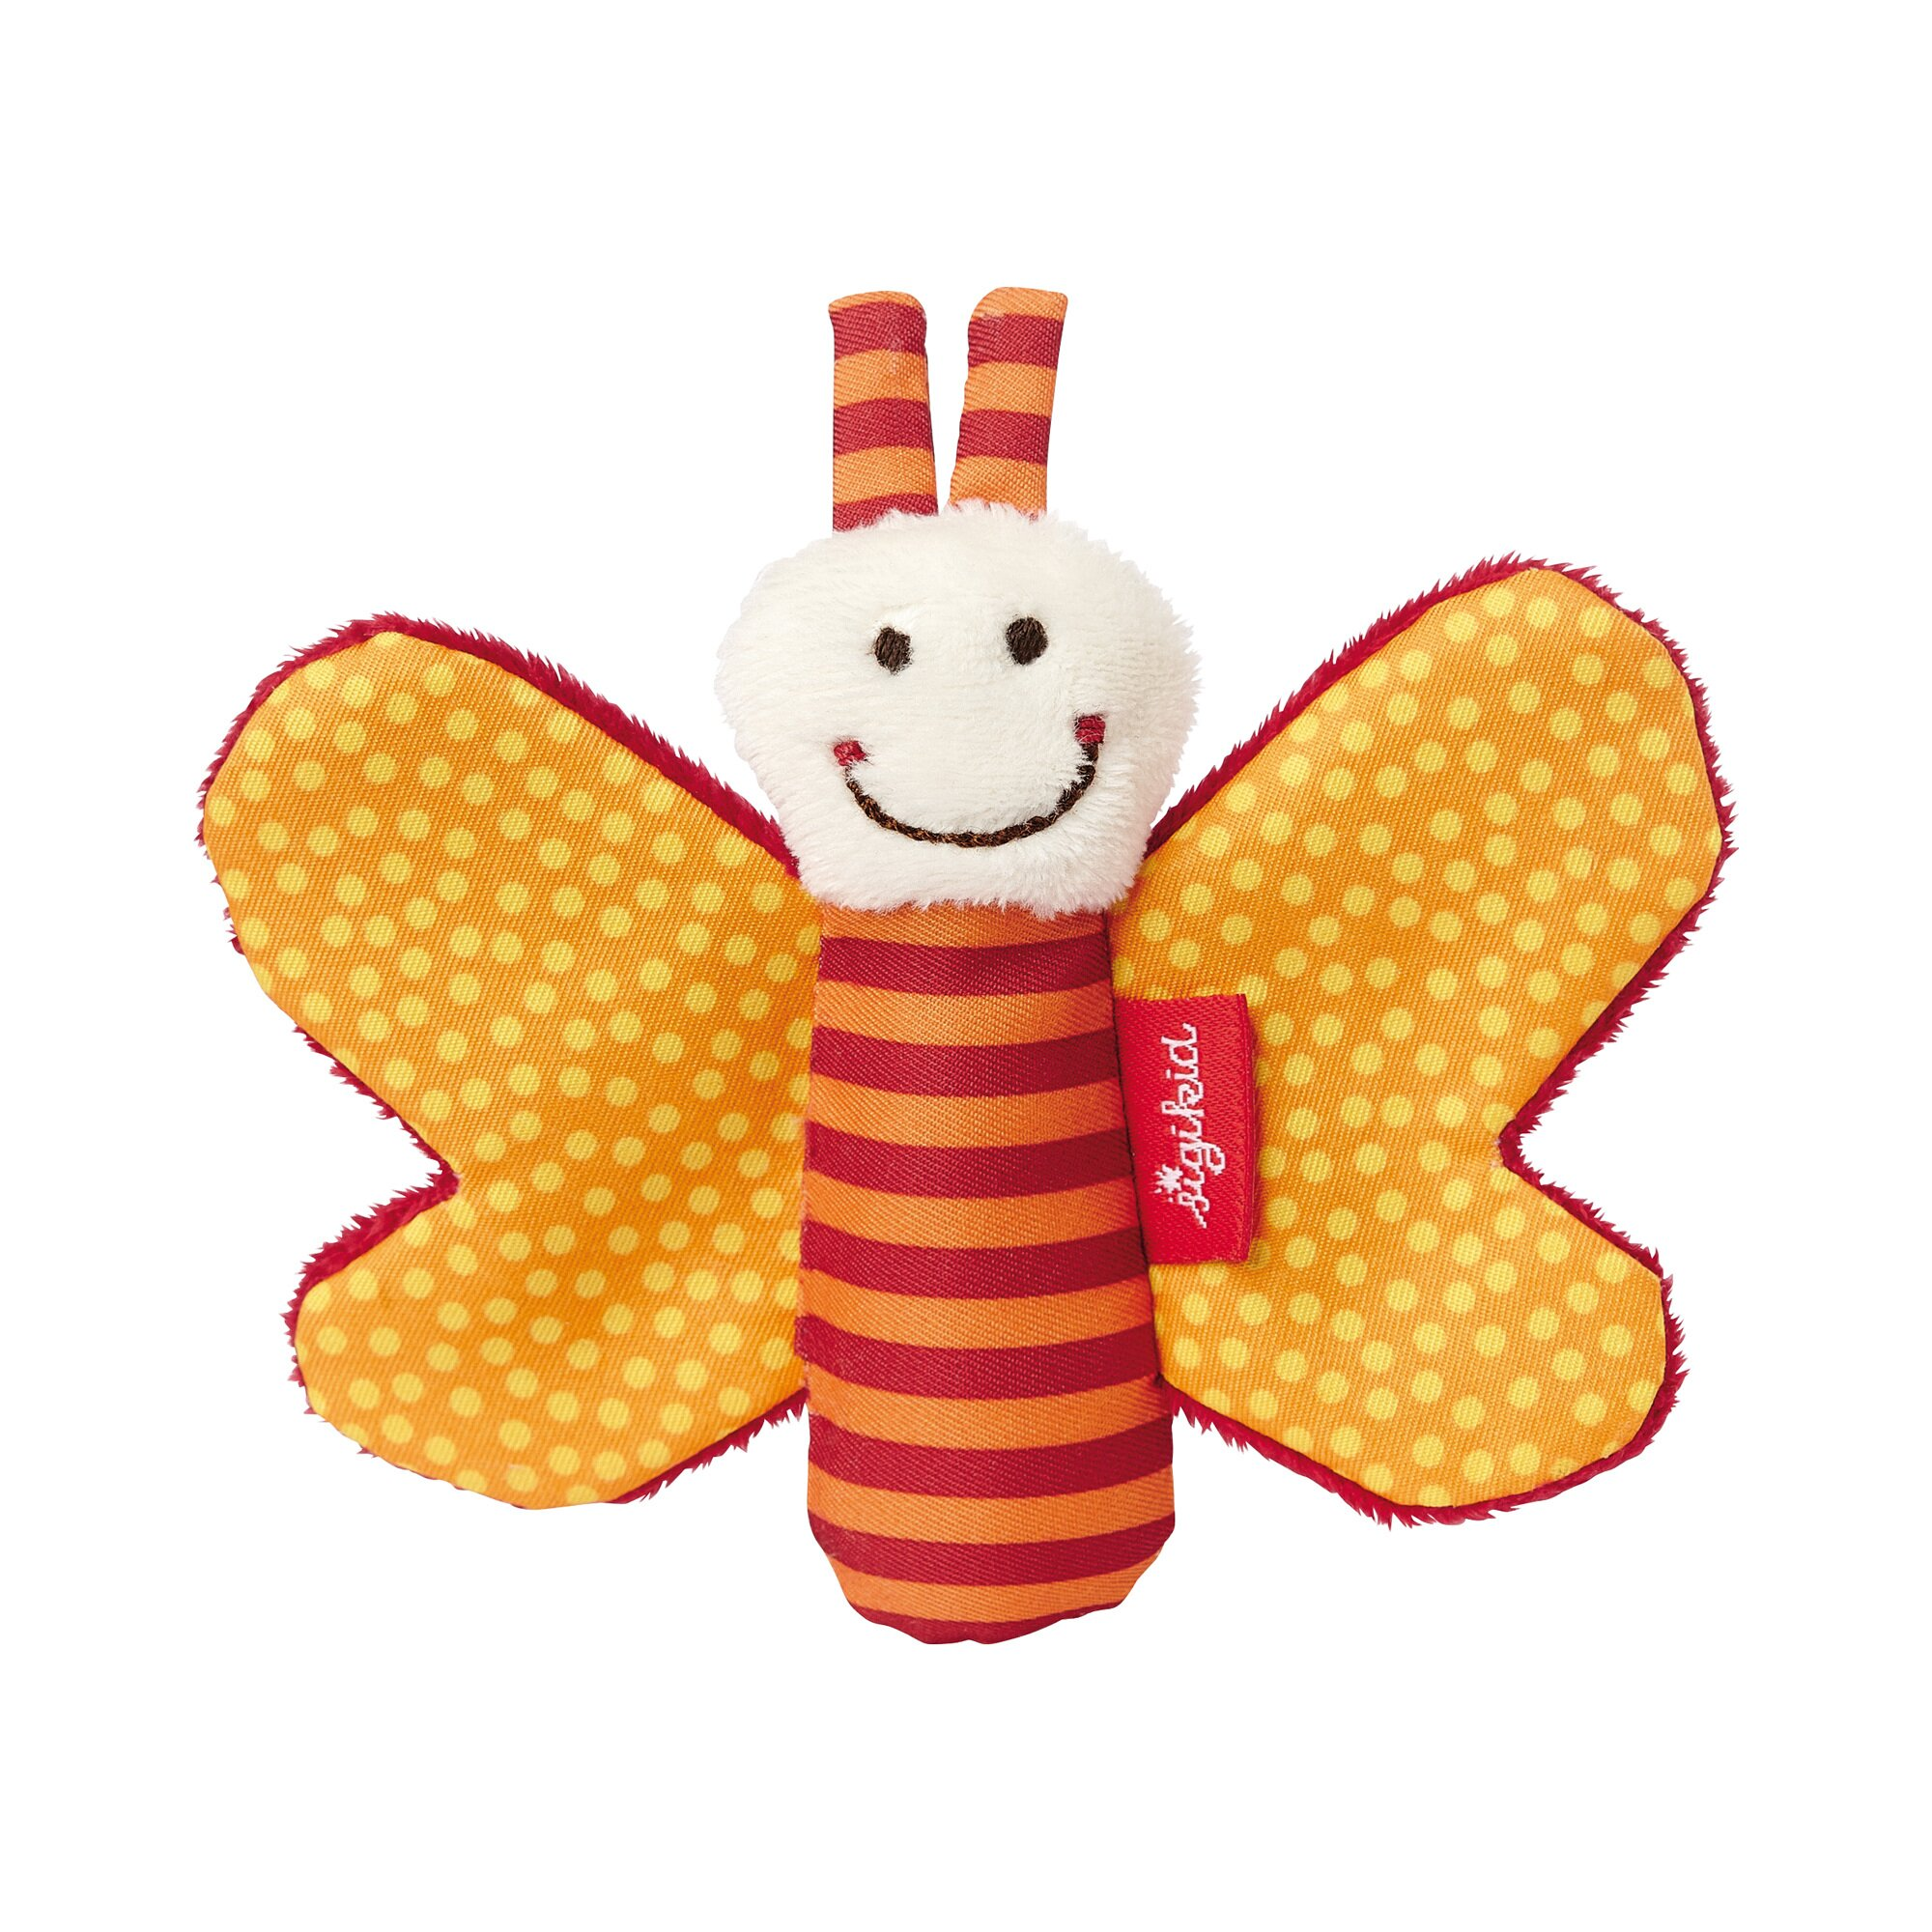 Sigikid Greifling Schmetterling Red Stars Collection